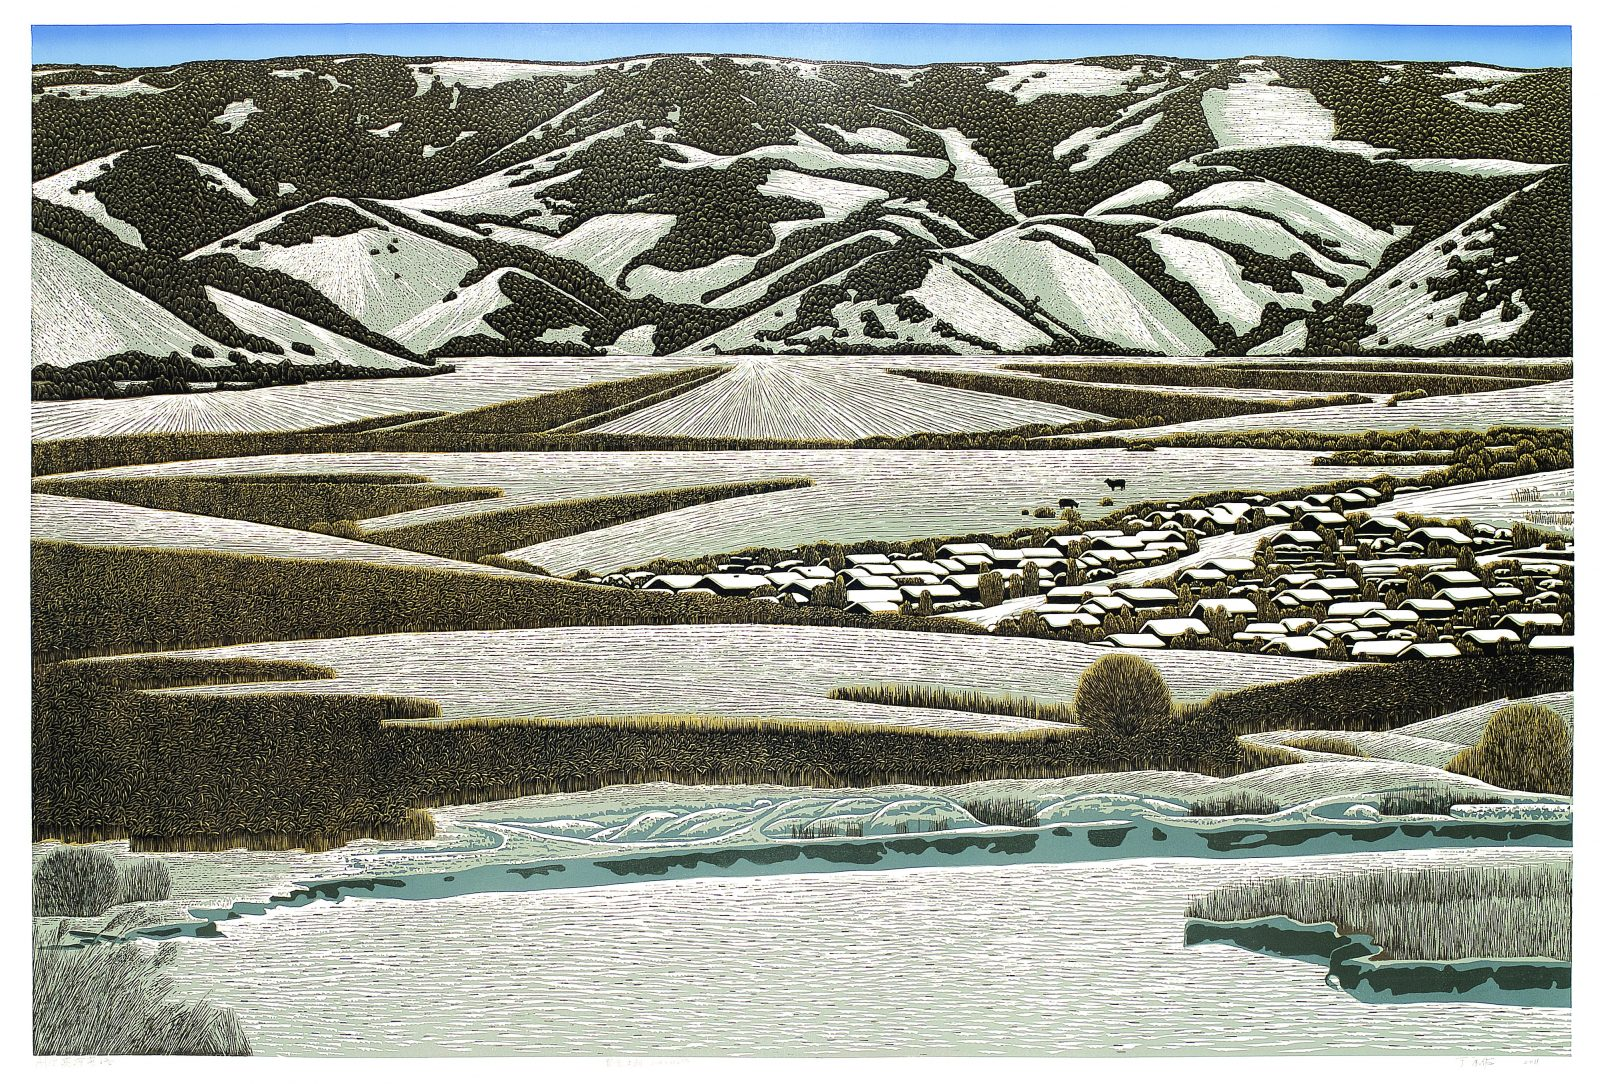 Winter in the Lianghe Village 亮河屯之冬,100x150cm, 2011